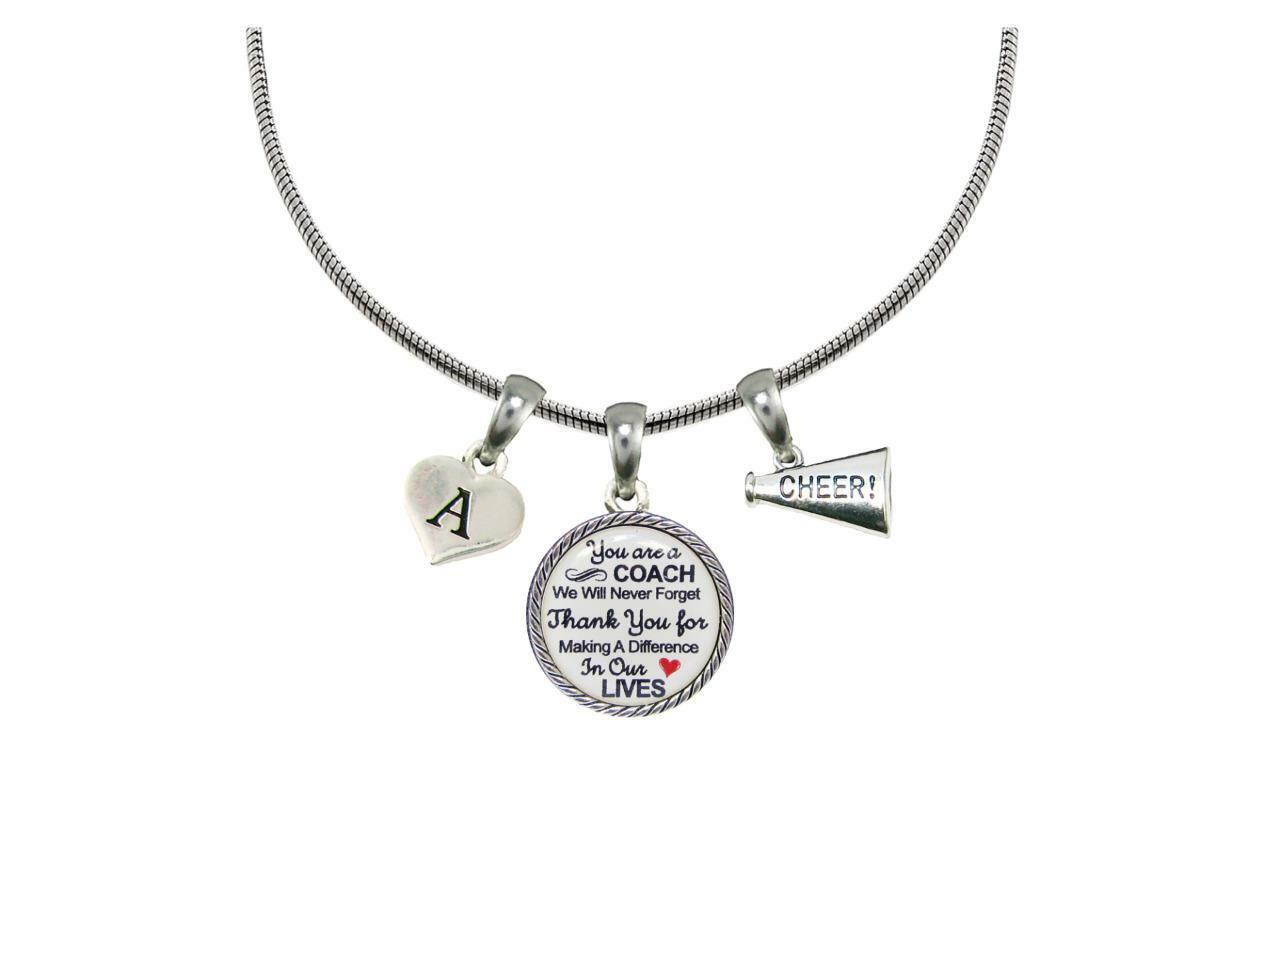 Custom Cheer Coach Thank You Gift Silver Necklace Jewelry Choose Initial image 2